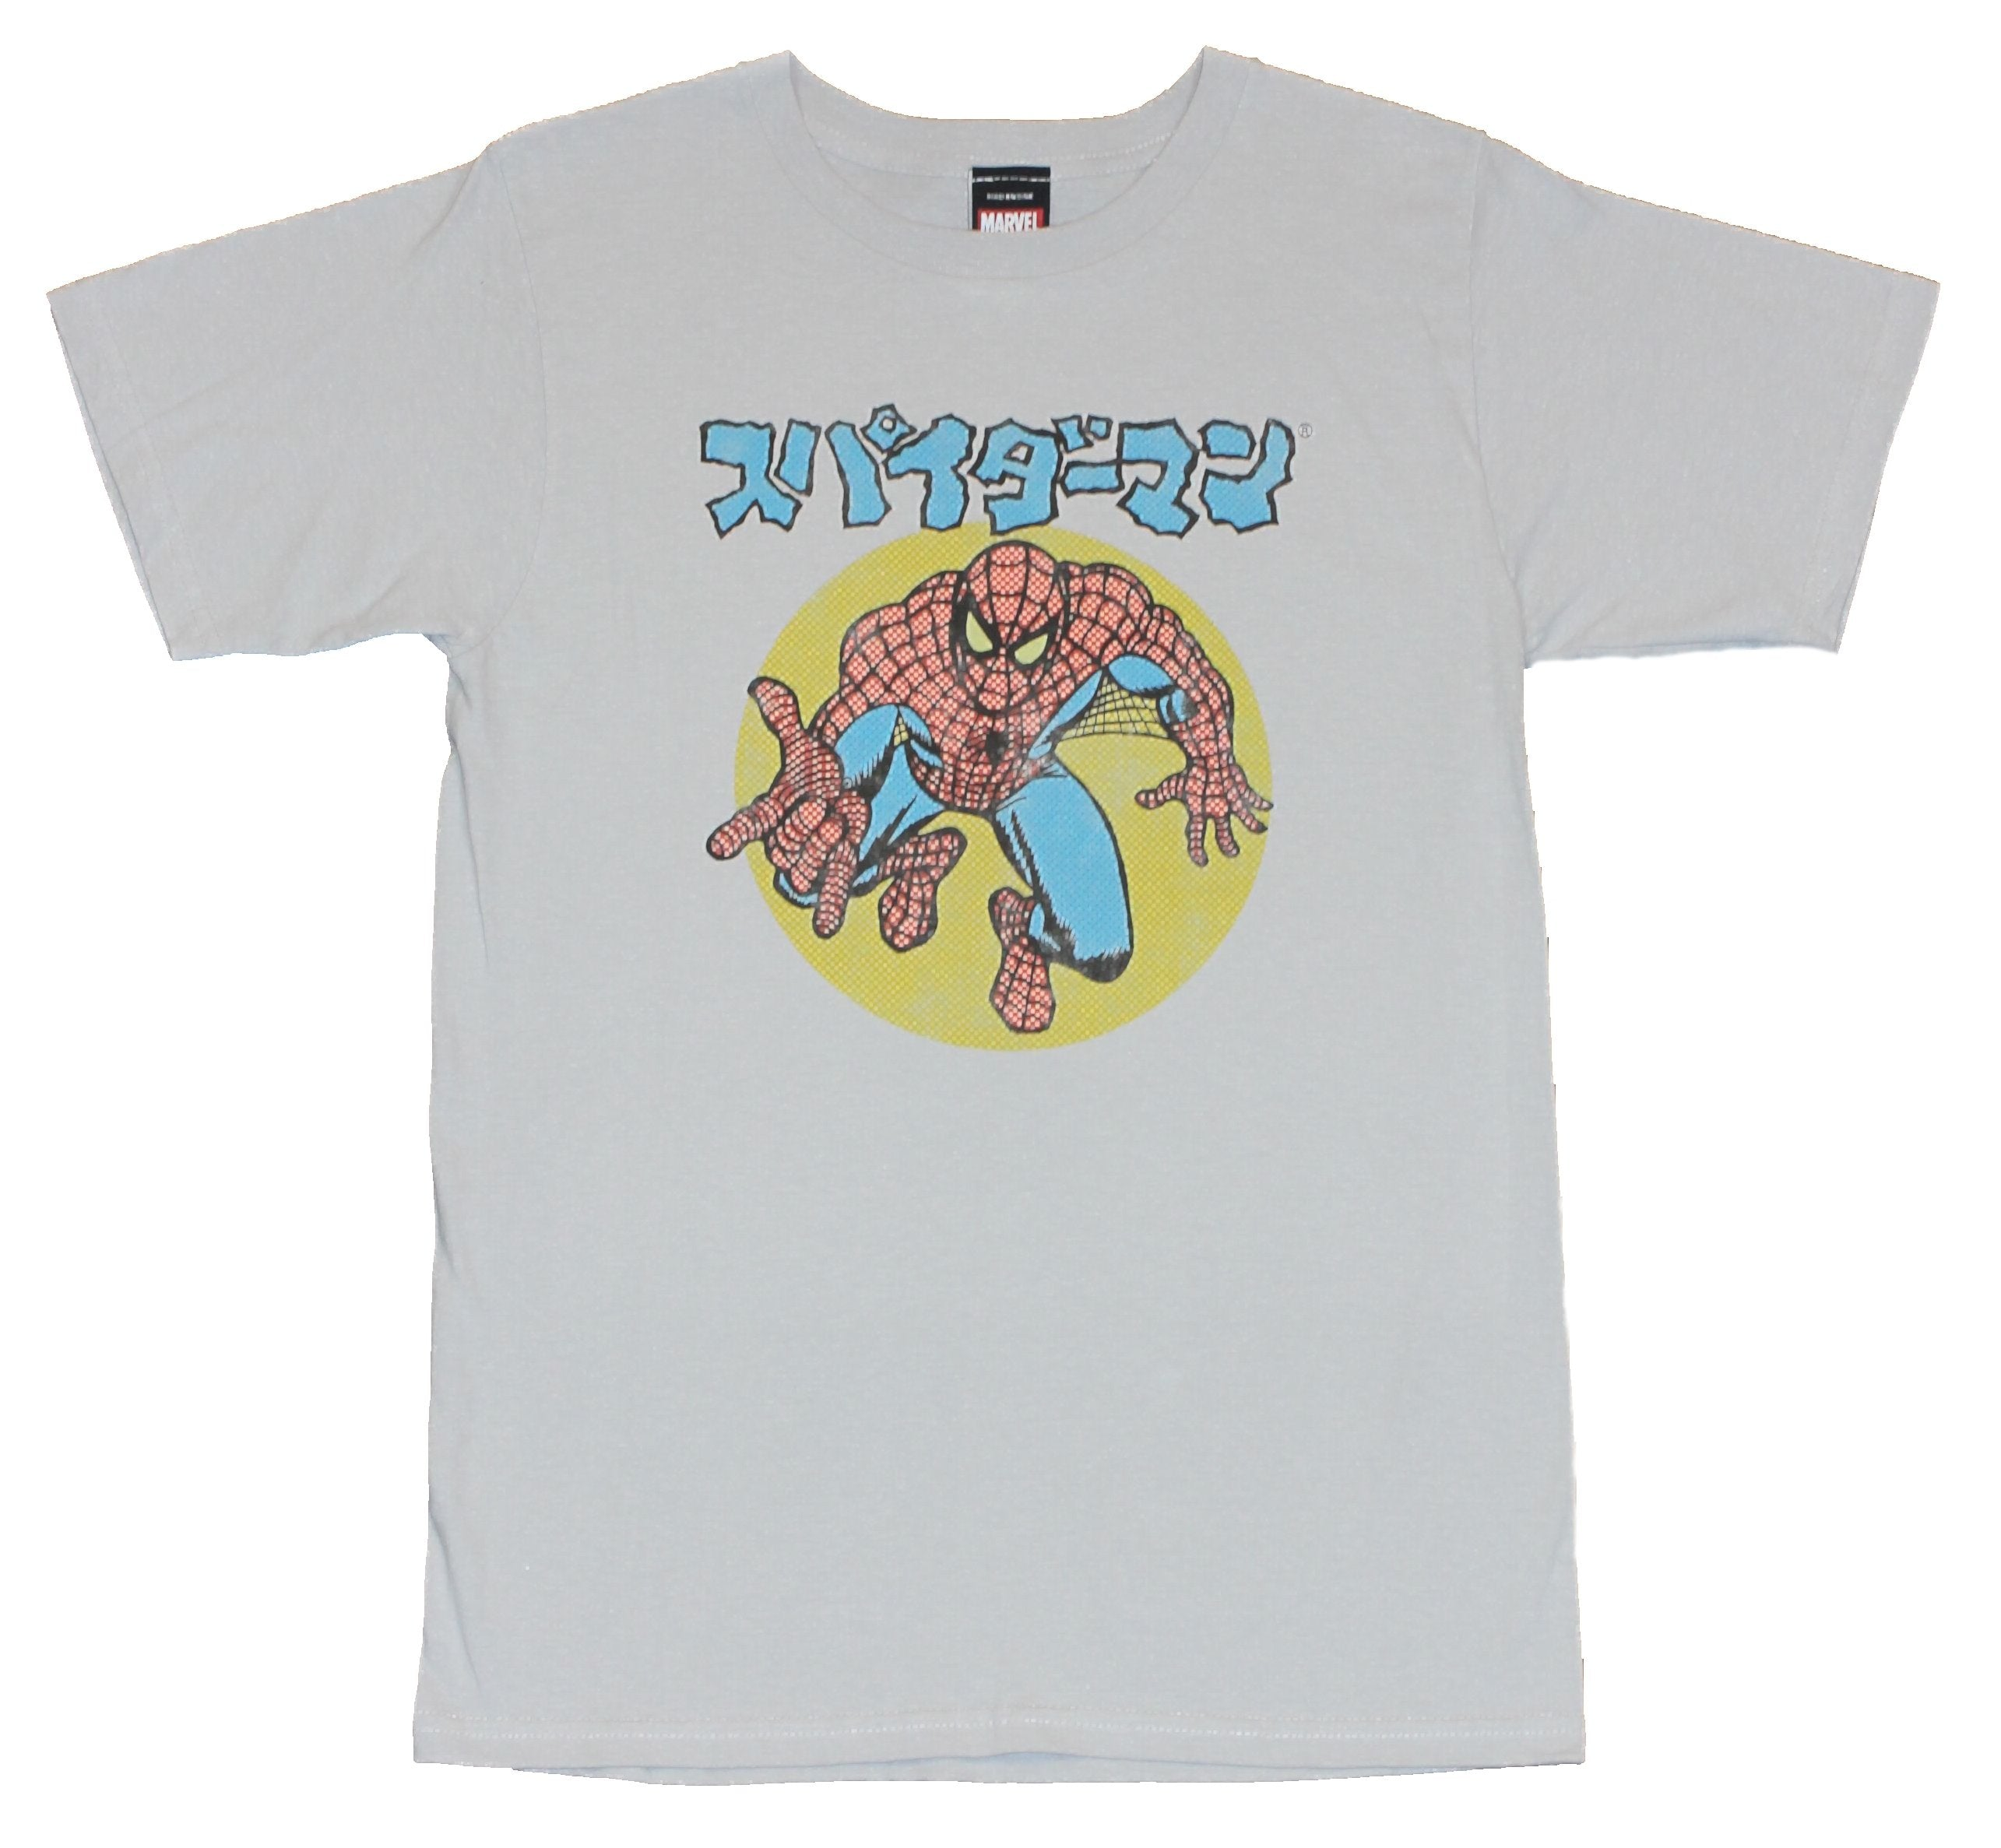 Spider-Man  (Marvel Comics) Mens T-Shirt - Newsprint Japaneese Logo Image